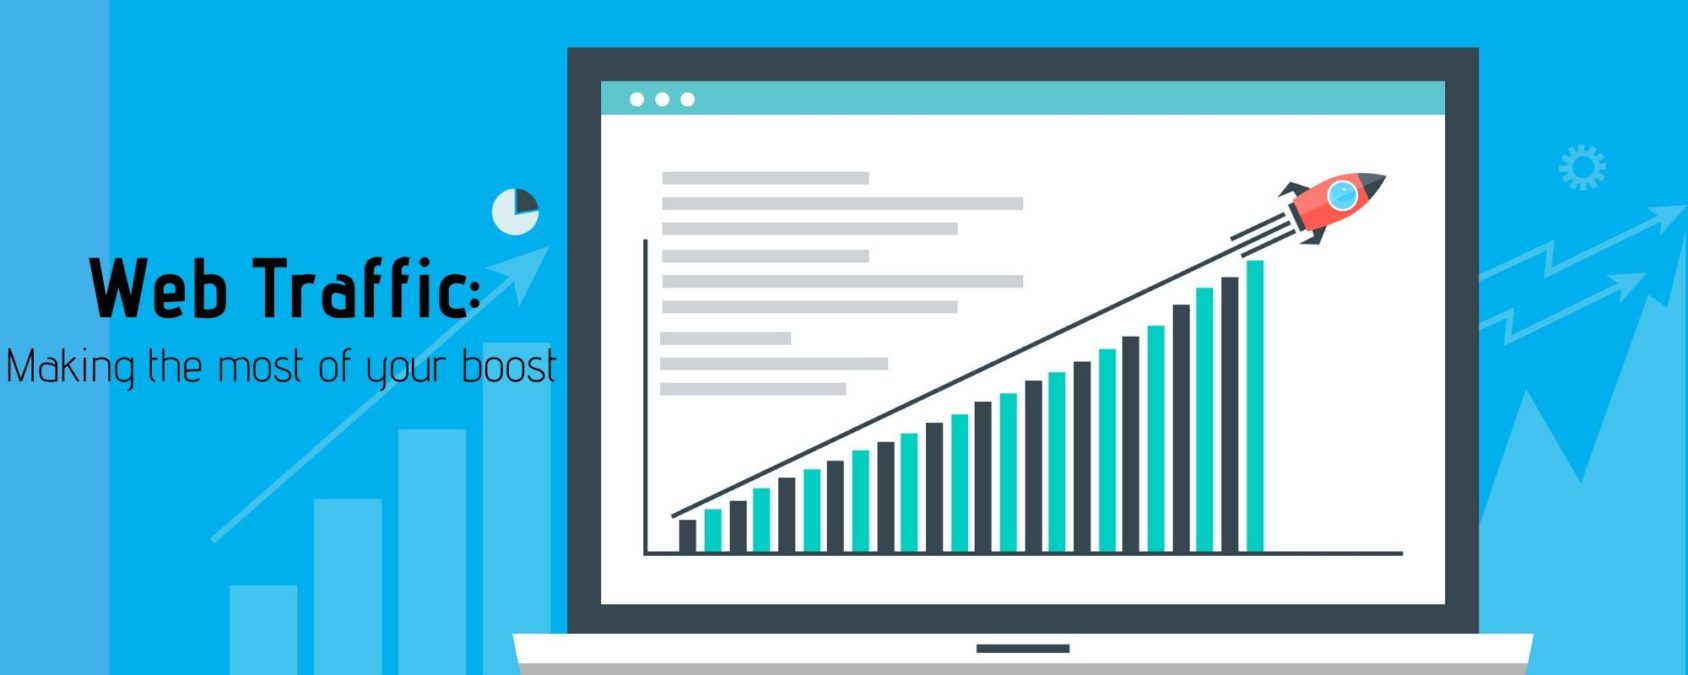 Making the most of an increase in web traffic as COVID-19 impacts demand online